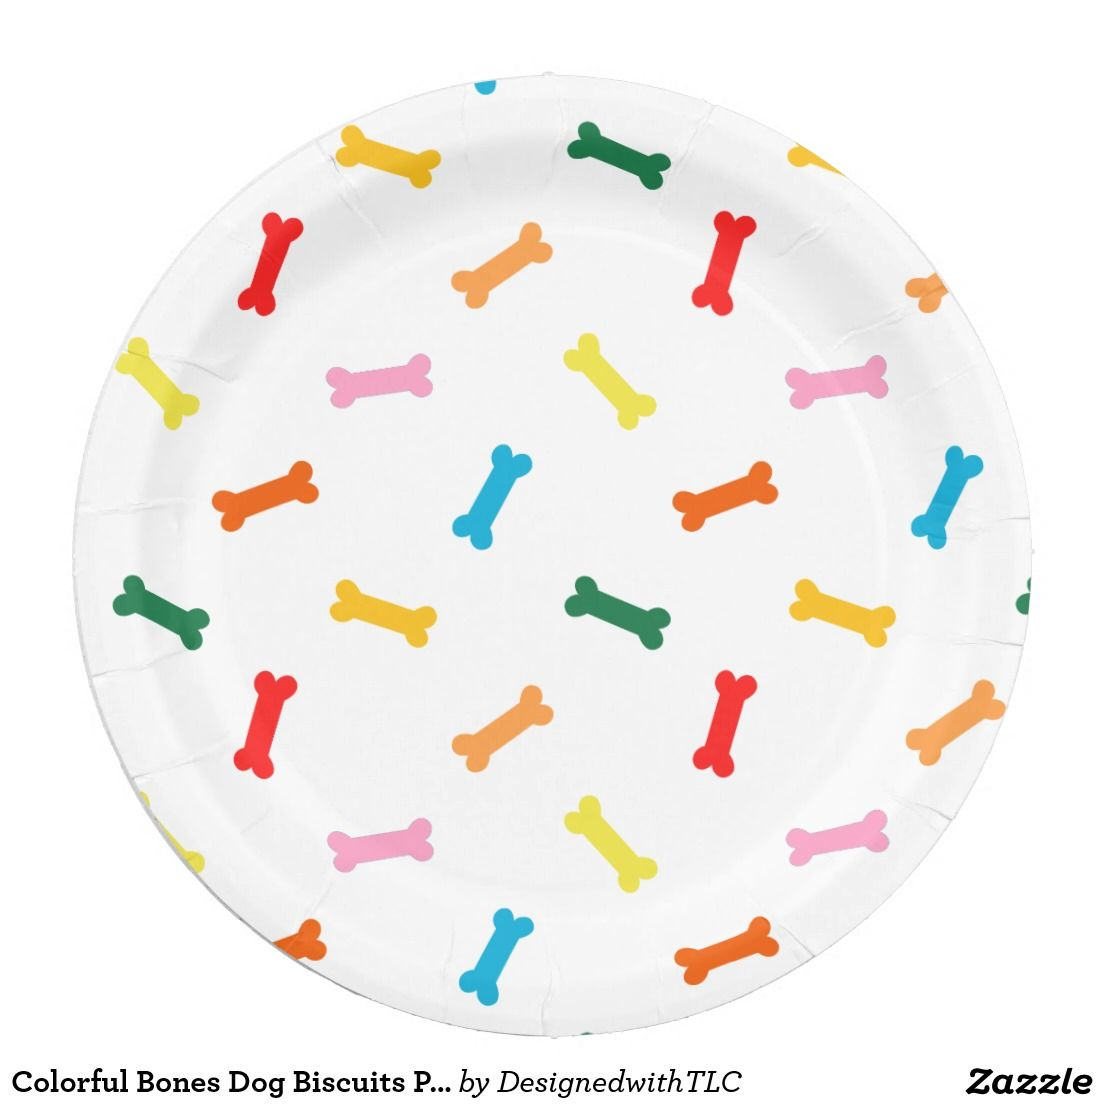 Colorful Bones Dog Biscuits Party Plates For Dogs  sc 1 st  Goldenacresdogs.com & Dog Paper Plates - Goldenacresdogs.com